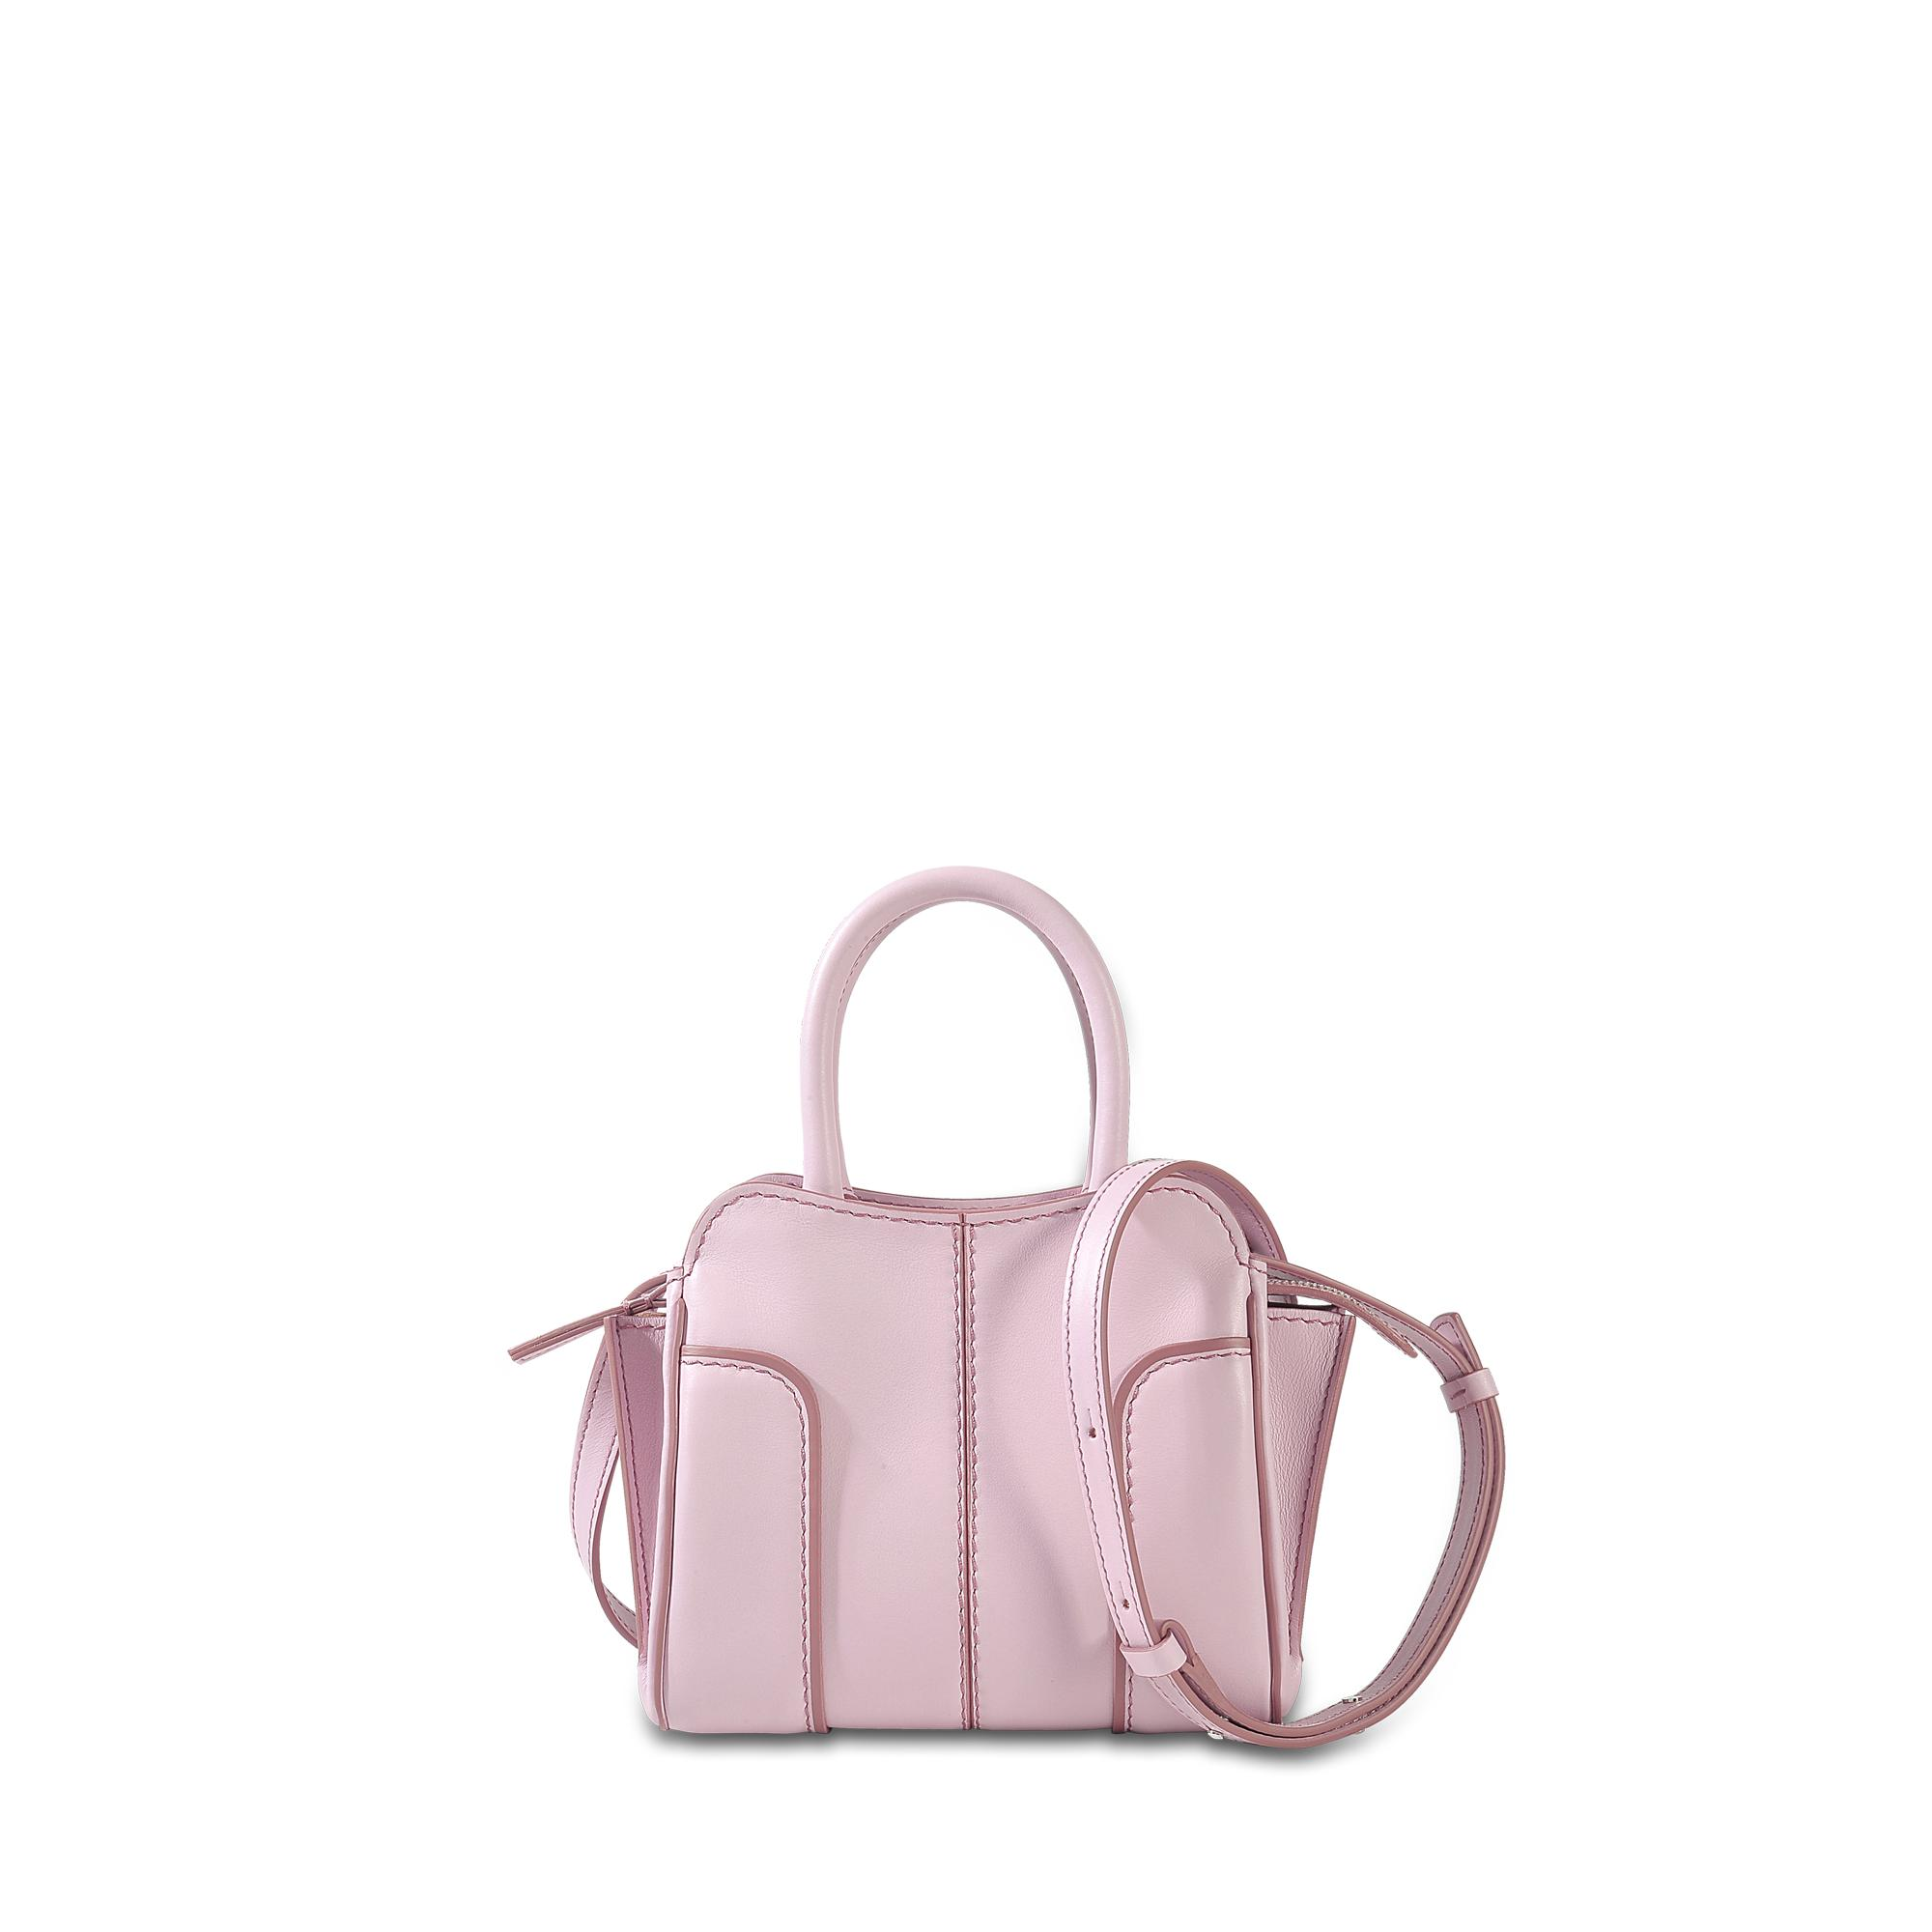 Sella Micro Bag in Lilac Grace Lux Calfskin Tod's 97Rkd